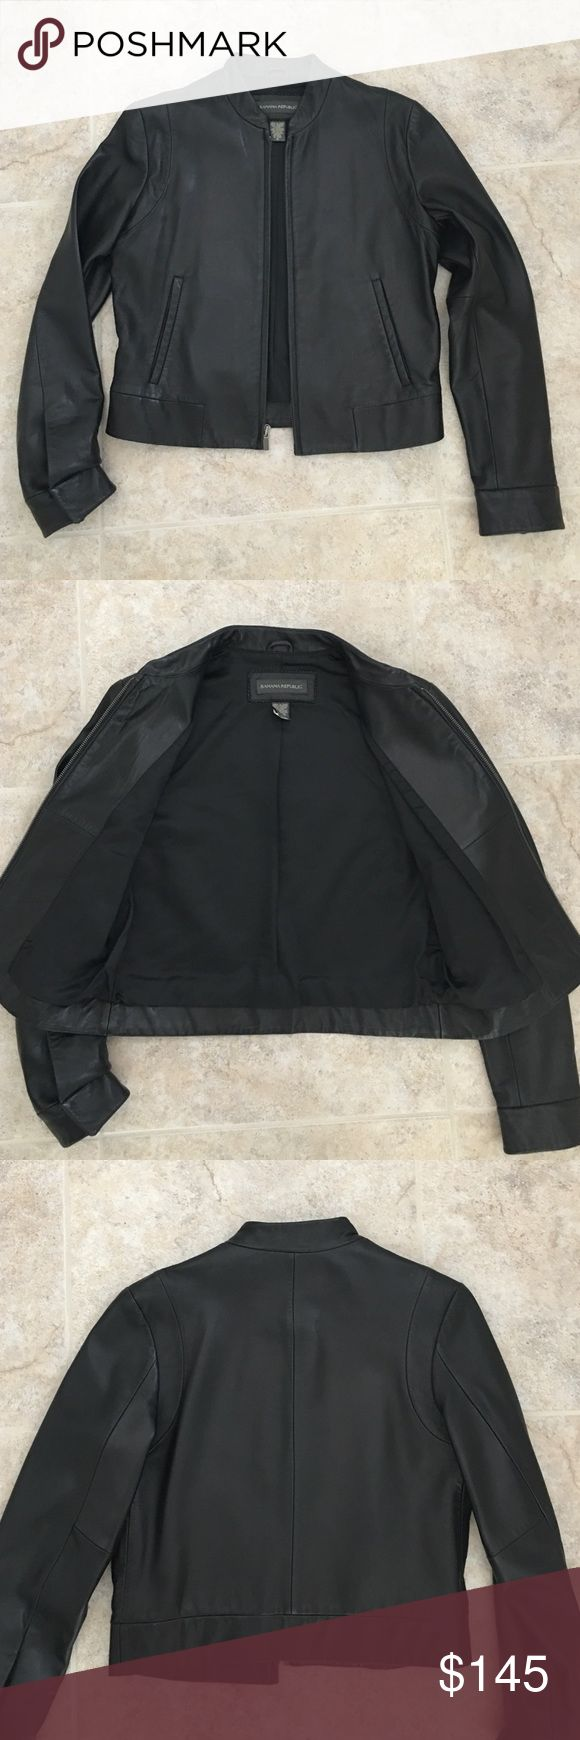 Banana Republic Classic Black Leather Jacket Genuine Banana Republic timeless and soft leather jacket. New! No tags. Zipper closure with side pockets. Banana Republic Jackets & Coats